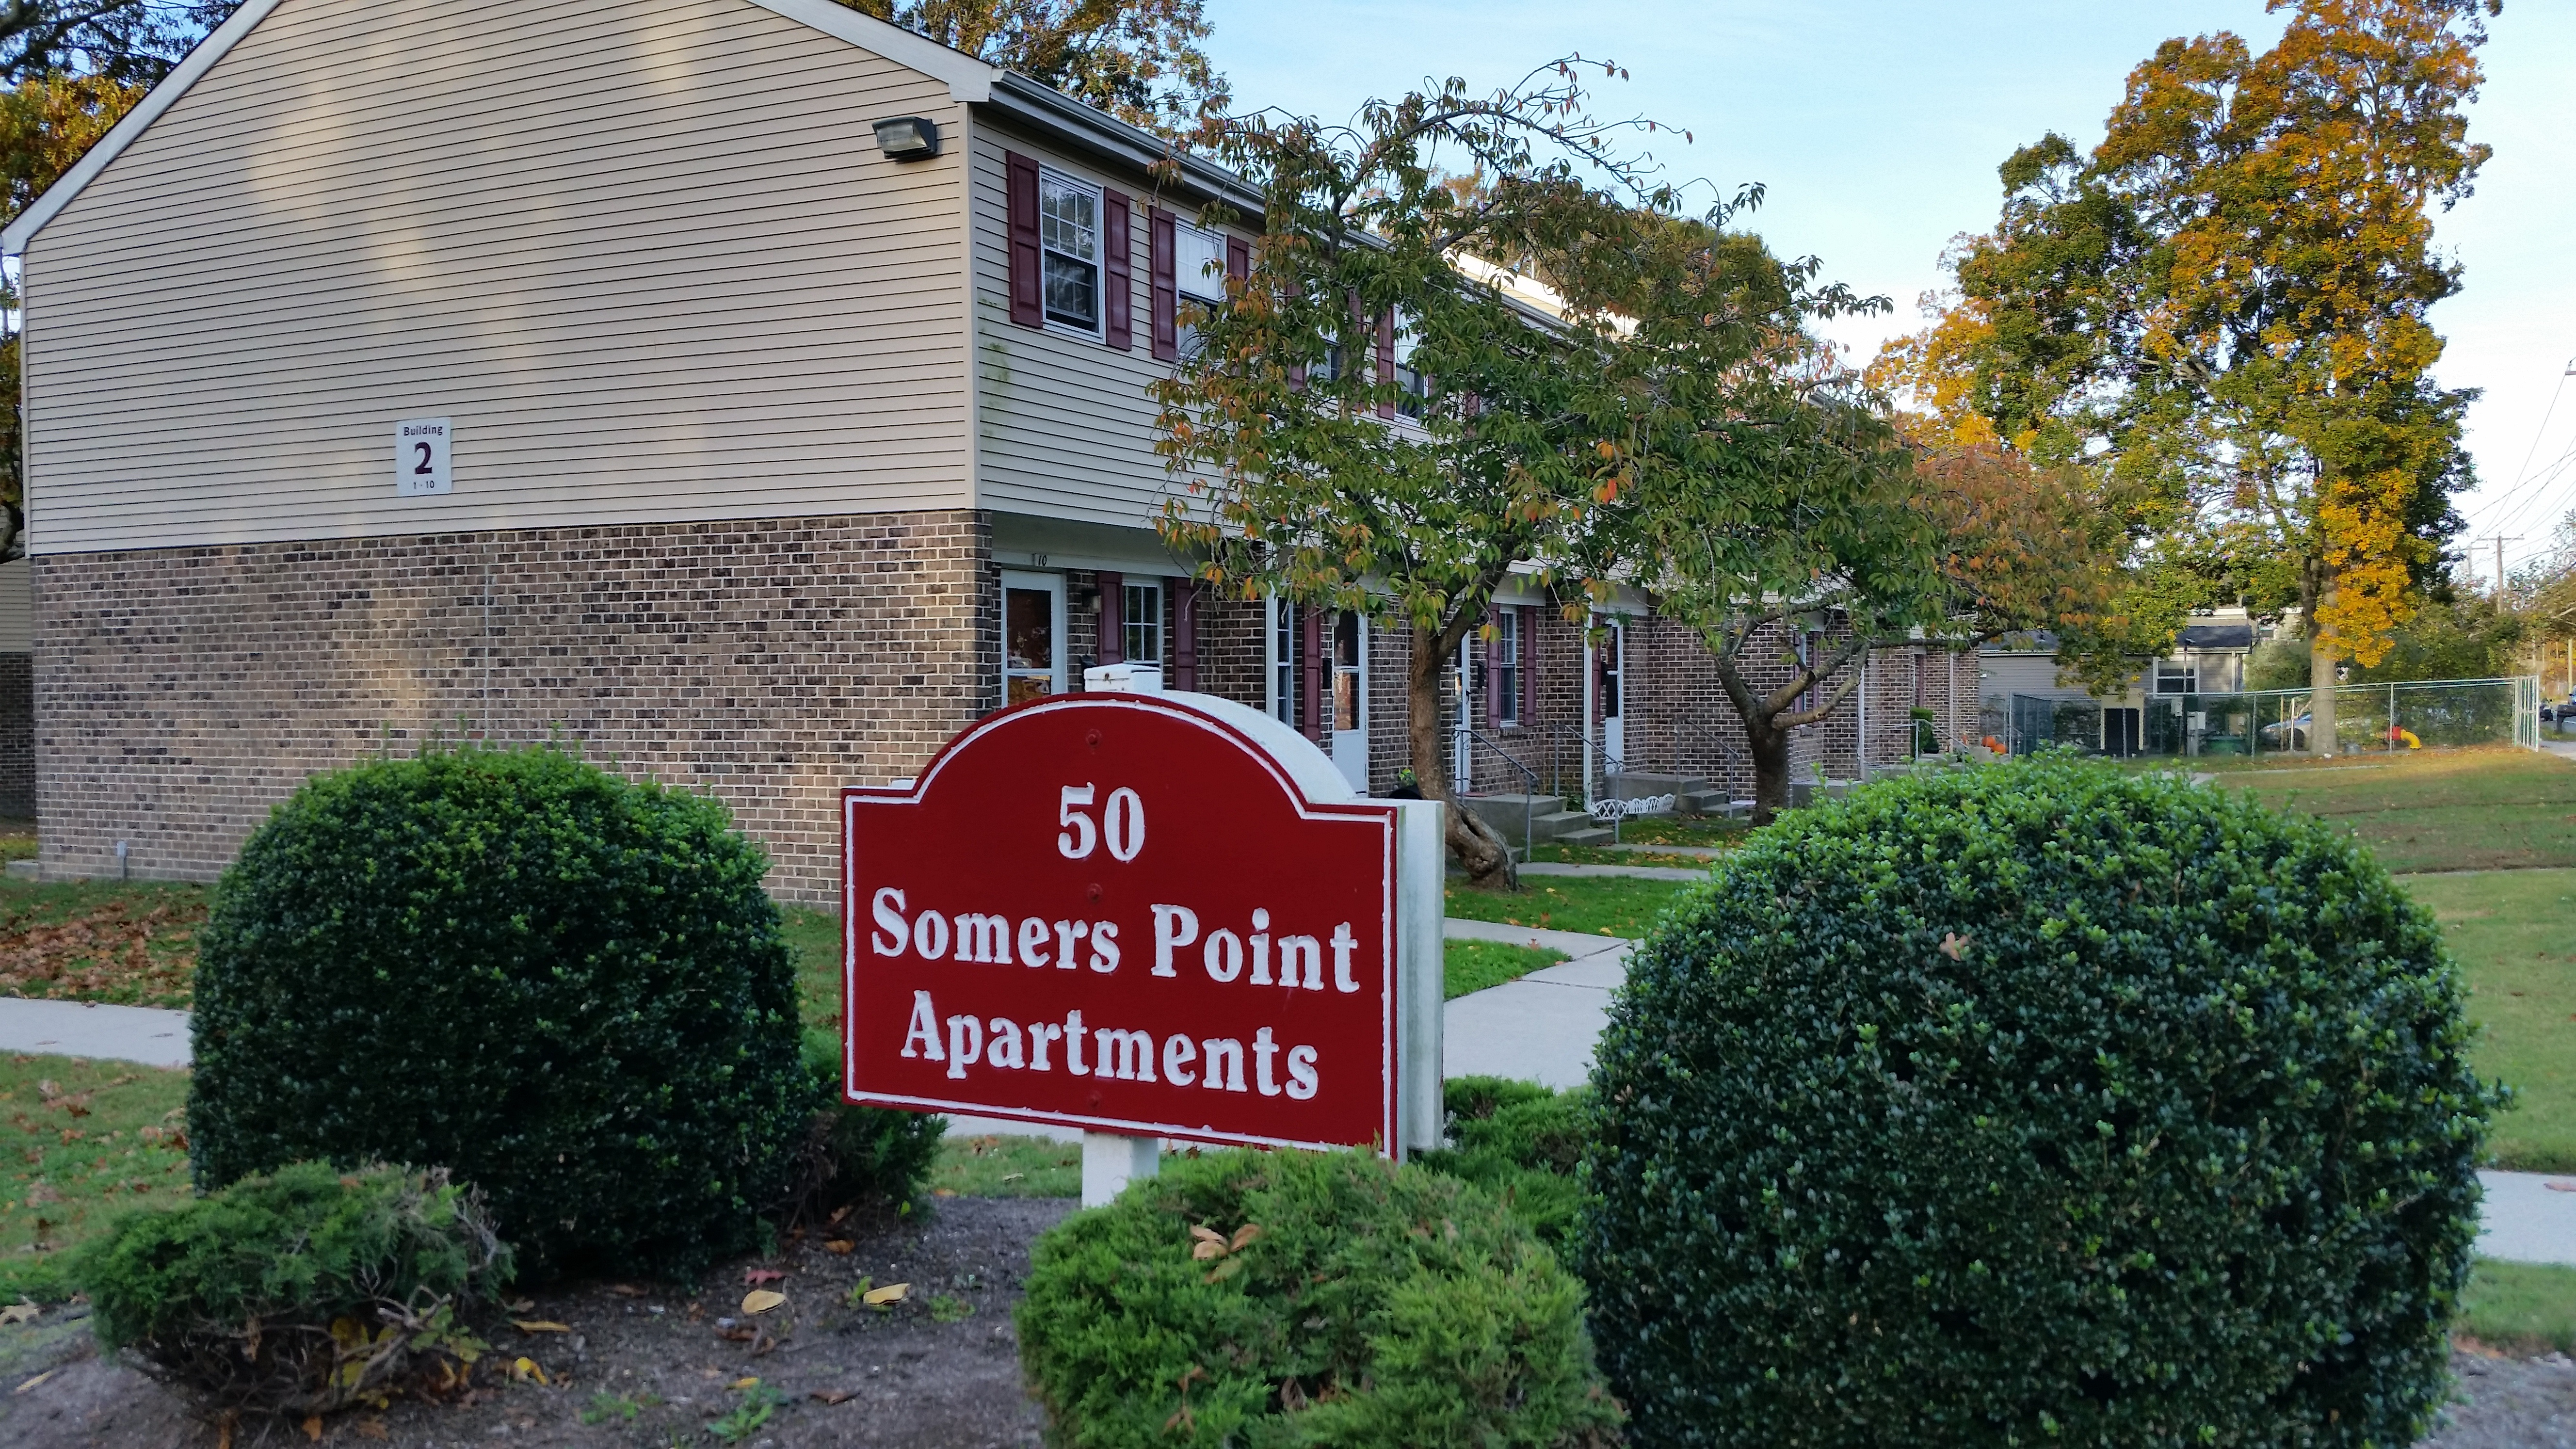 somers point dating site Dating back to 1693, somers point is the oldest settlement in atlantic county, nj formerly known as somerset plantation, the town's name comes from the somers family, who were among the first settlers in the area.